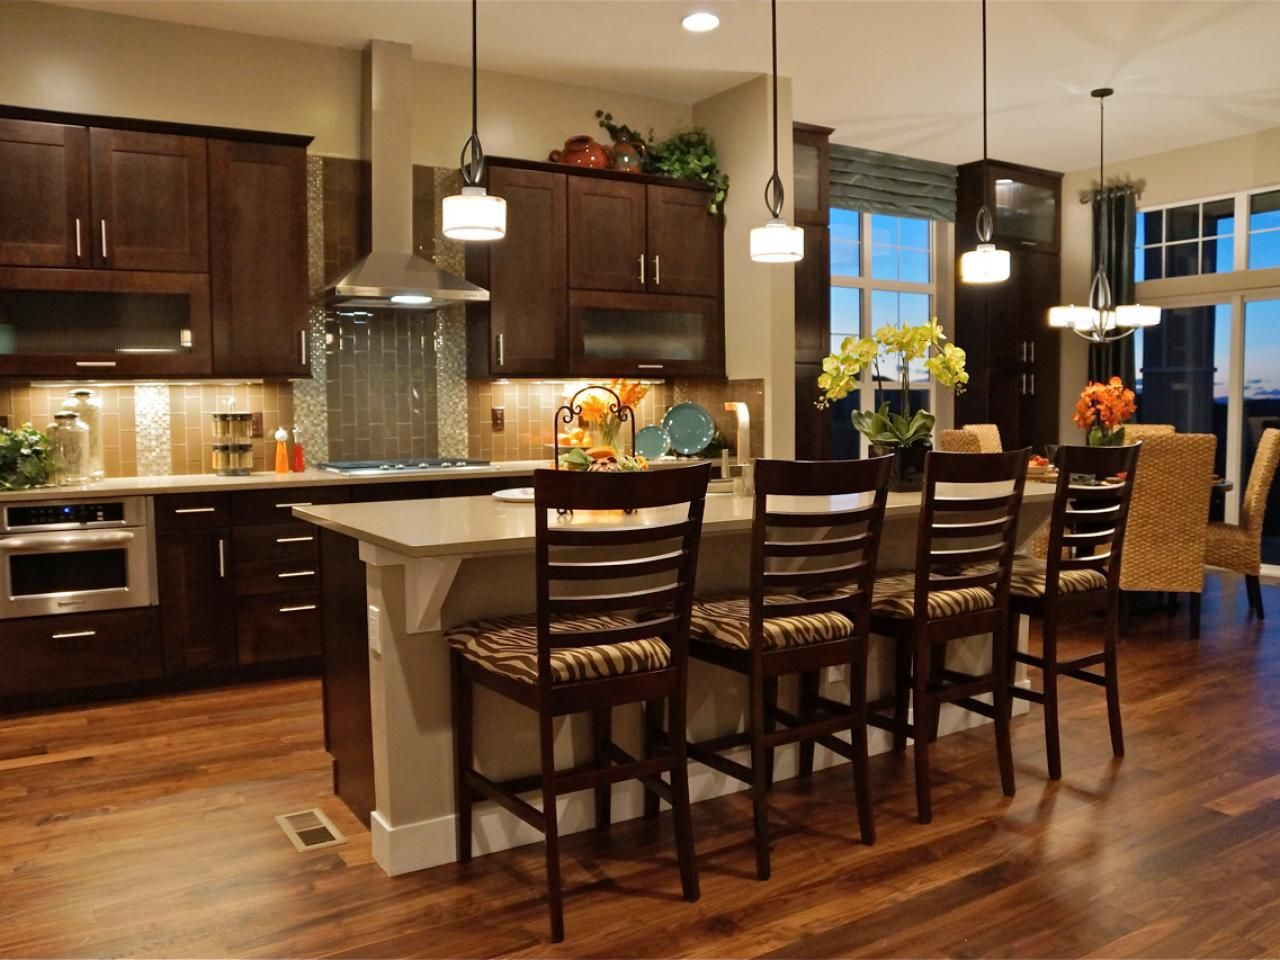 Custom Kitchen Islands Pictures Ideas Tips From Hgtv: Kitchen Island Bar Stools: Pictures, Ideas & Tips From